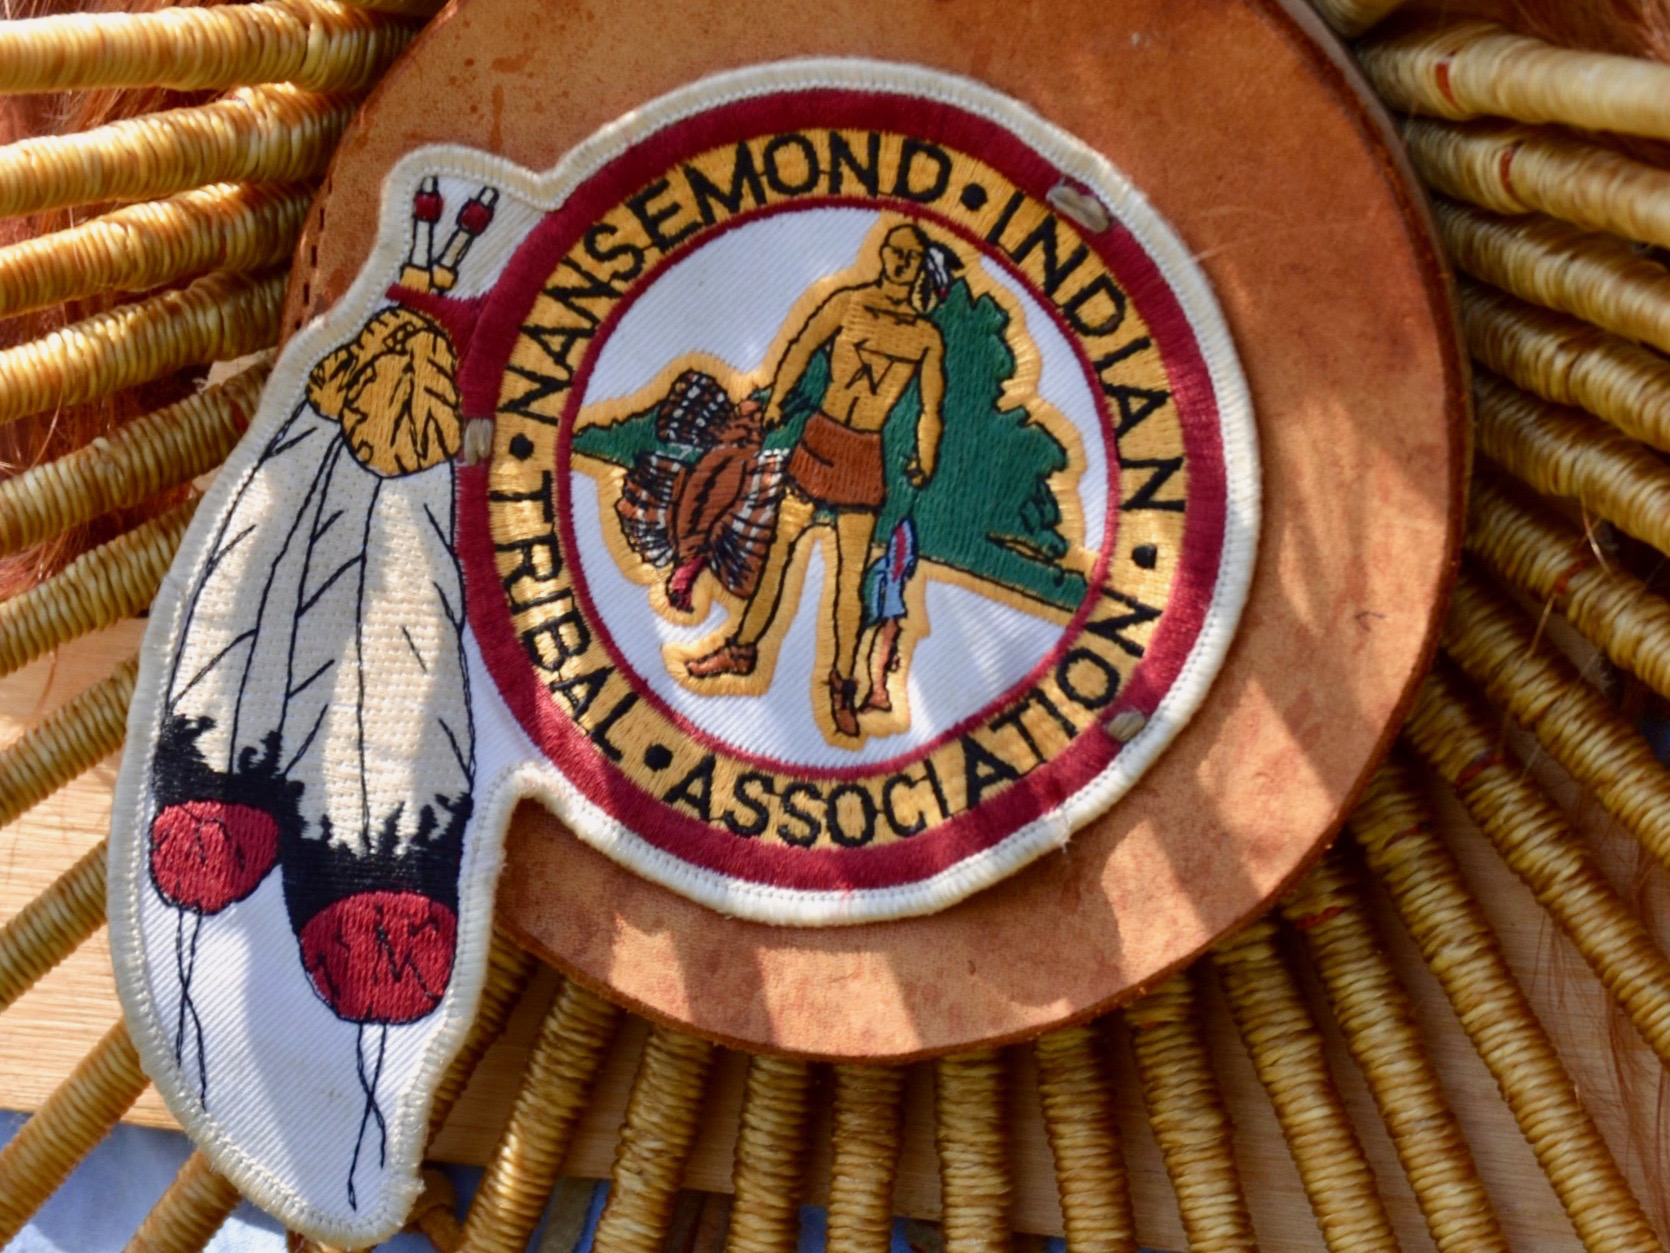 Senate Committee on Indian Affairs approves three bills at meeting